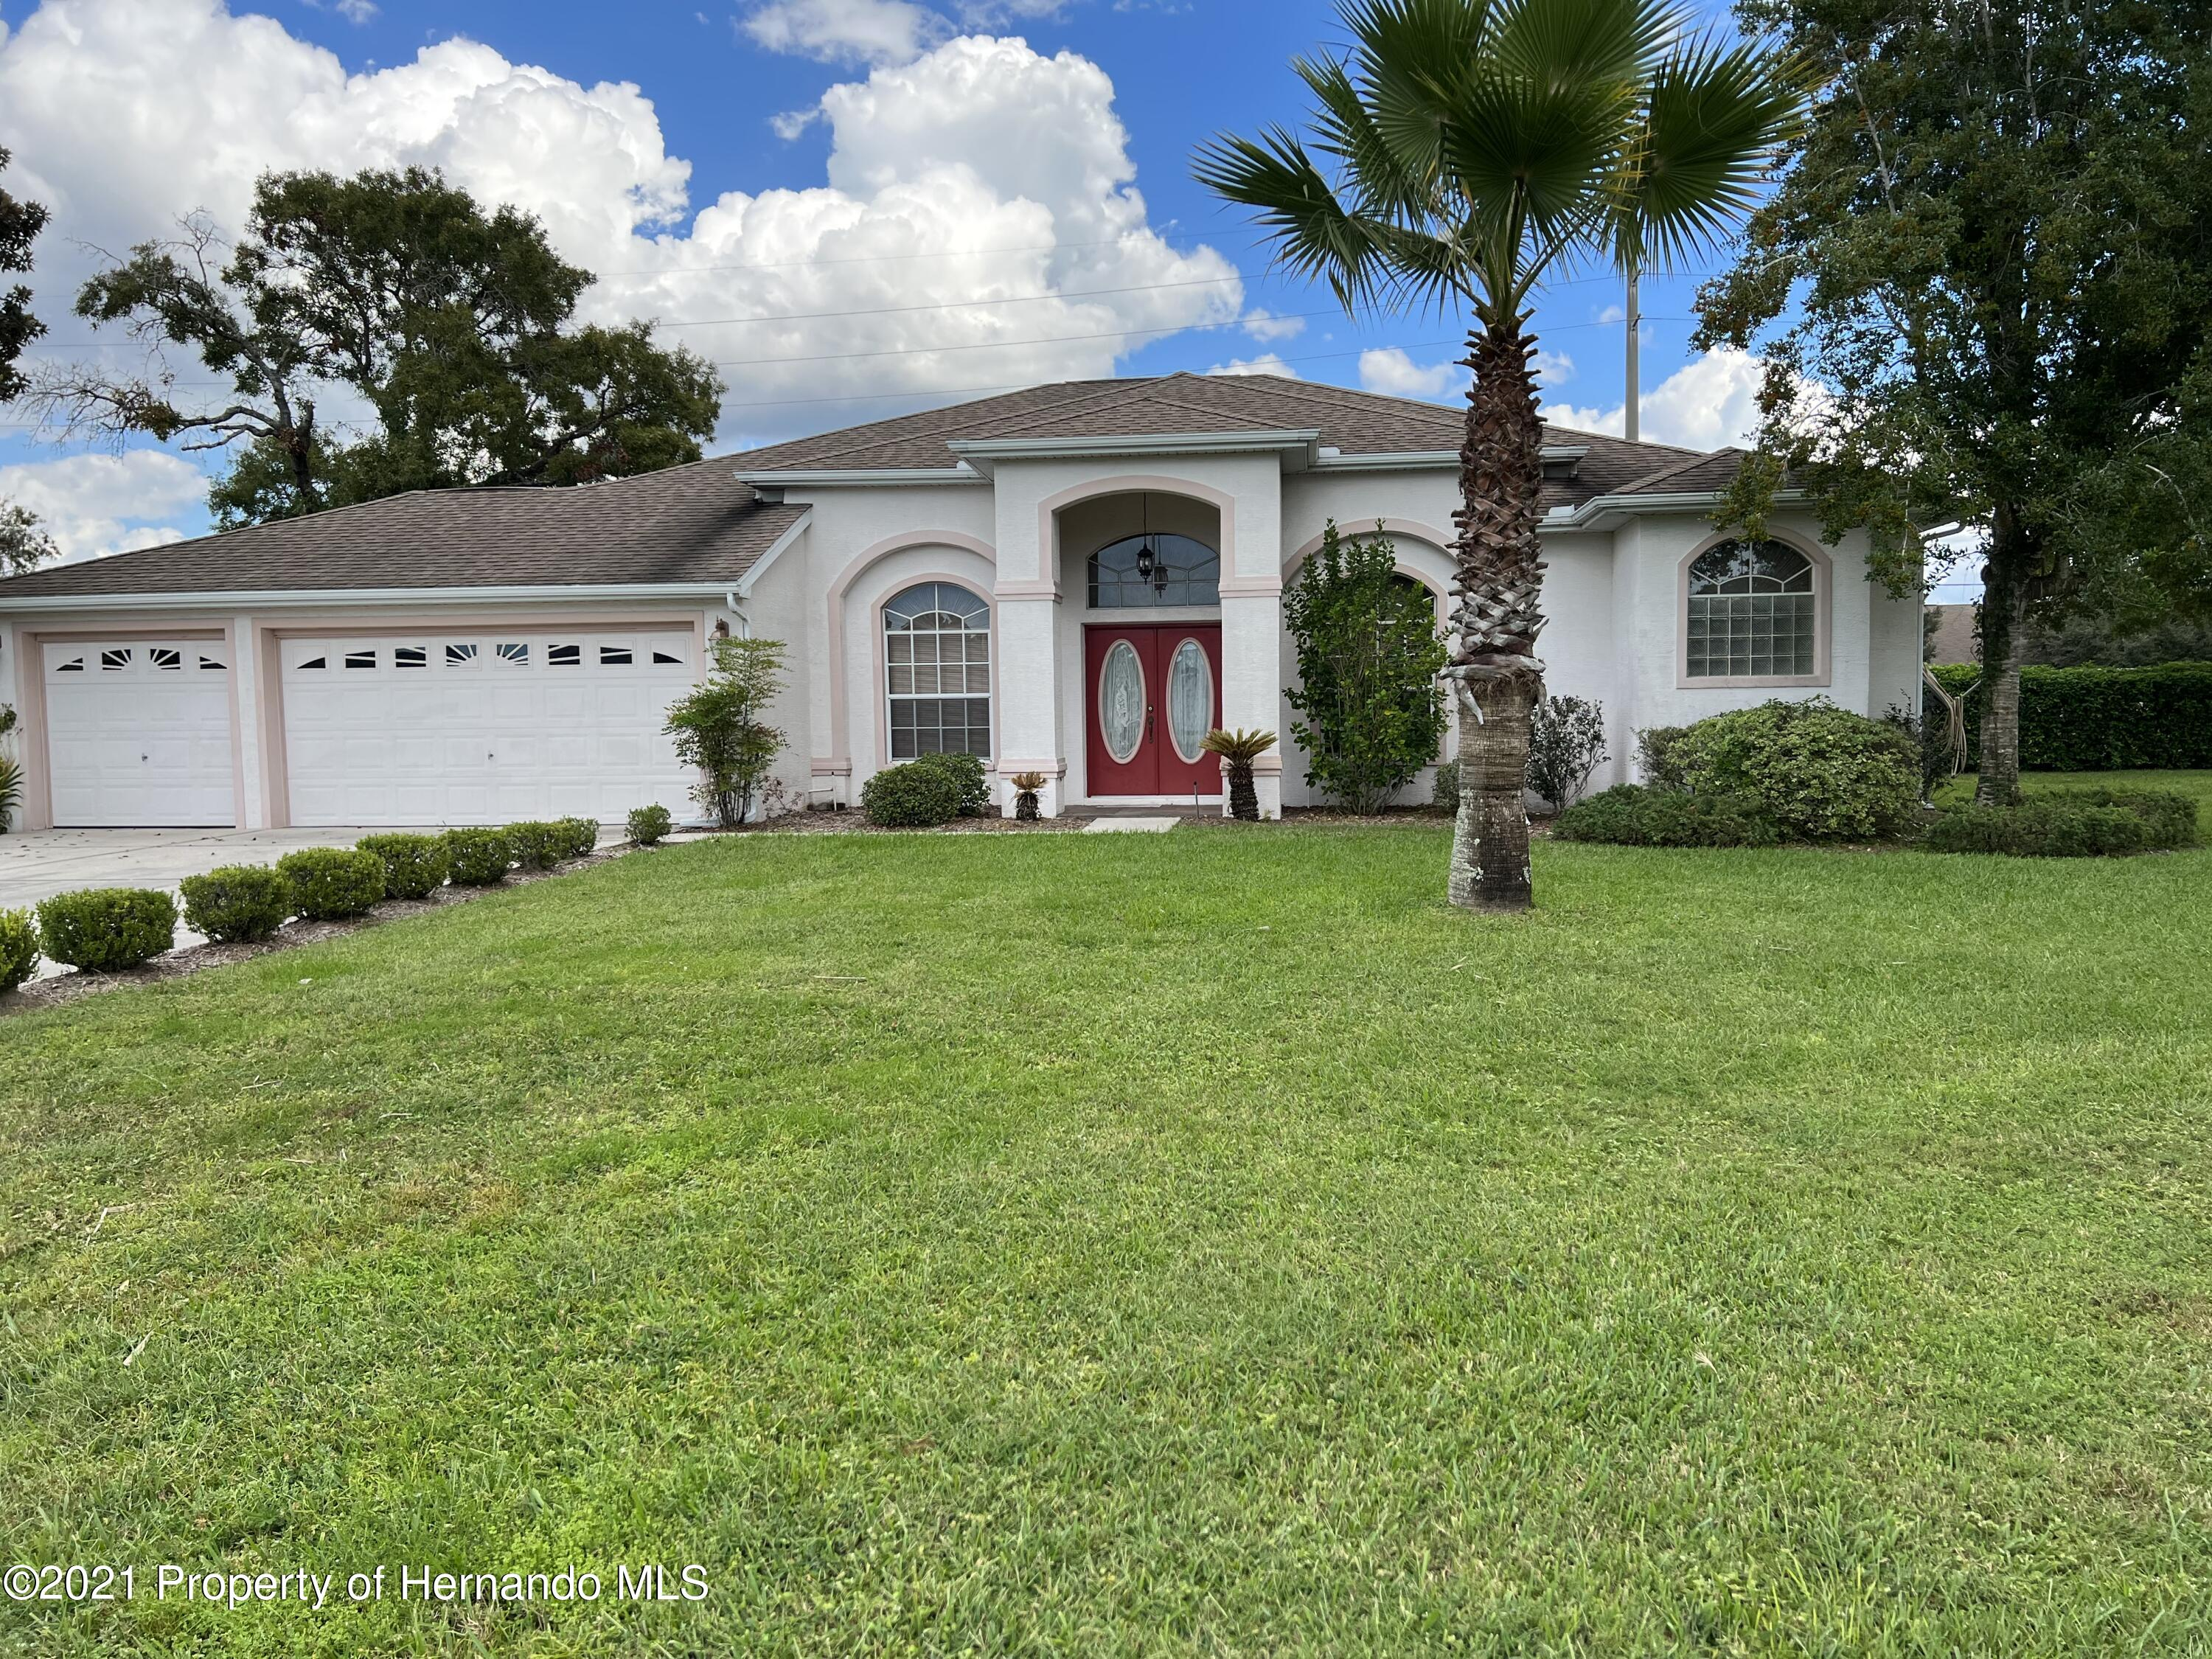 Details for 14296 Pullman Drive, Spring Hill, FL 34609